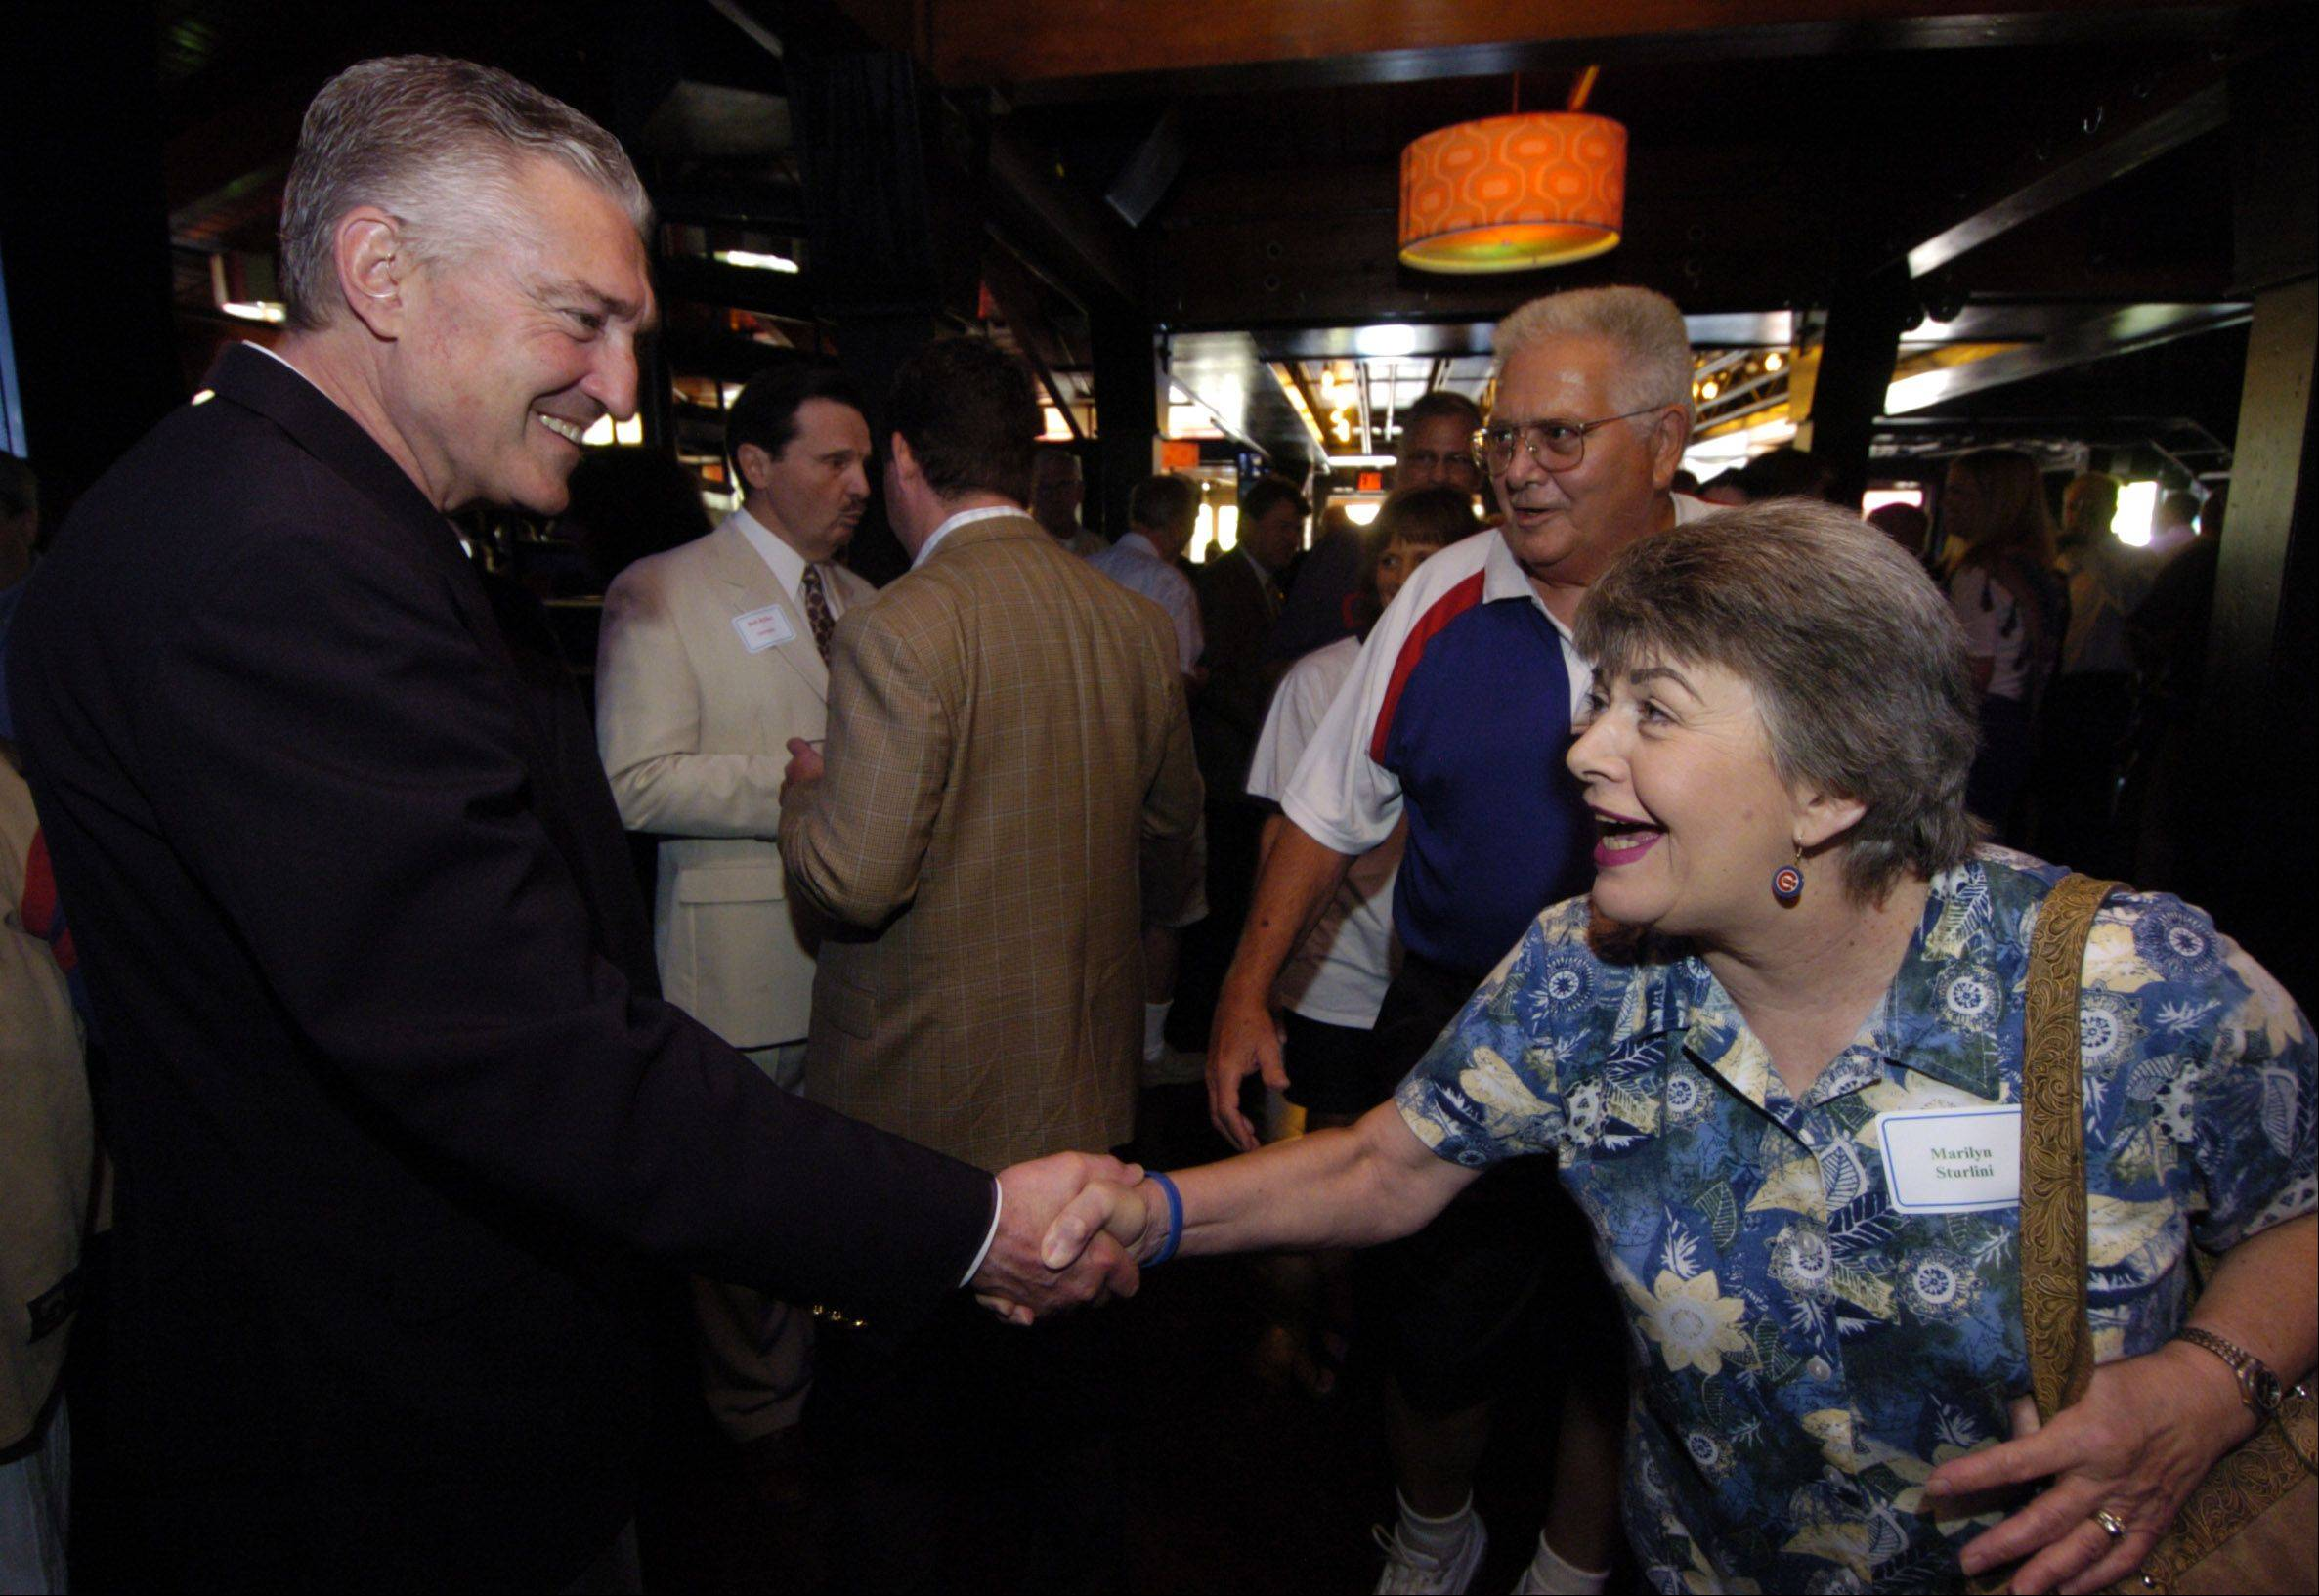 Marilyn Sturlini of Rolling Meadows greets Cubs radio broadcaster Pat Hughes during the event Thursday.